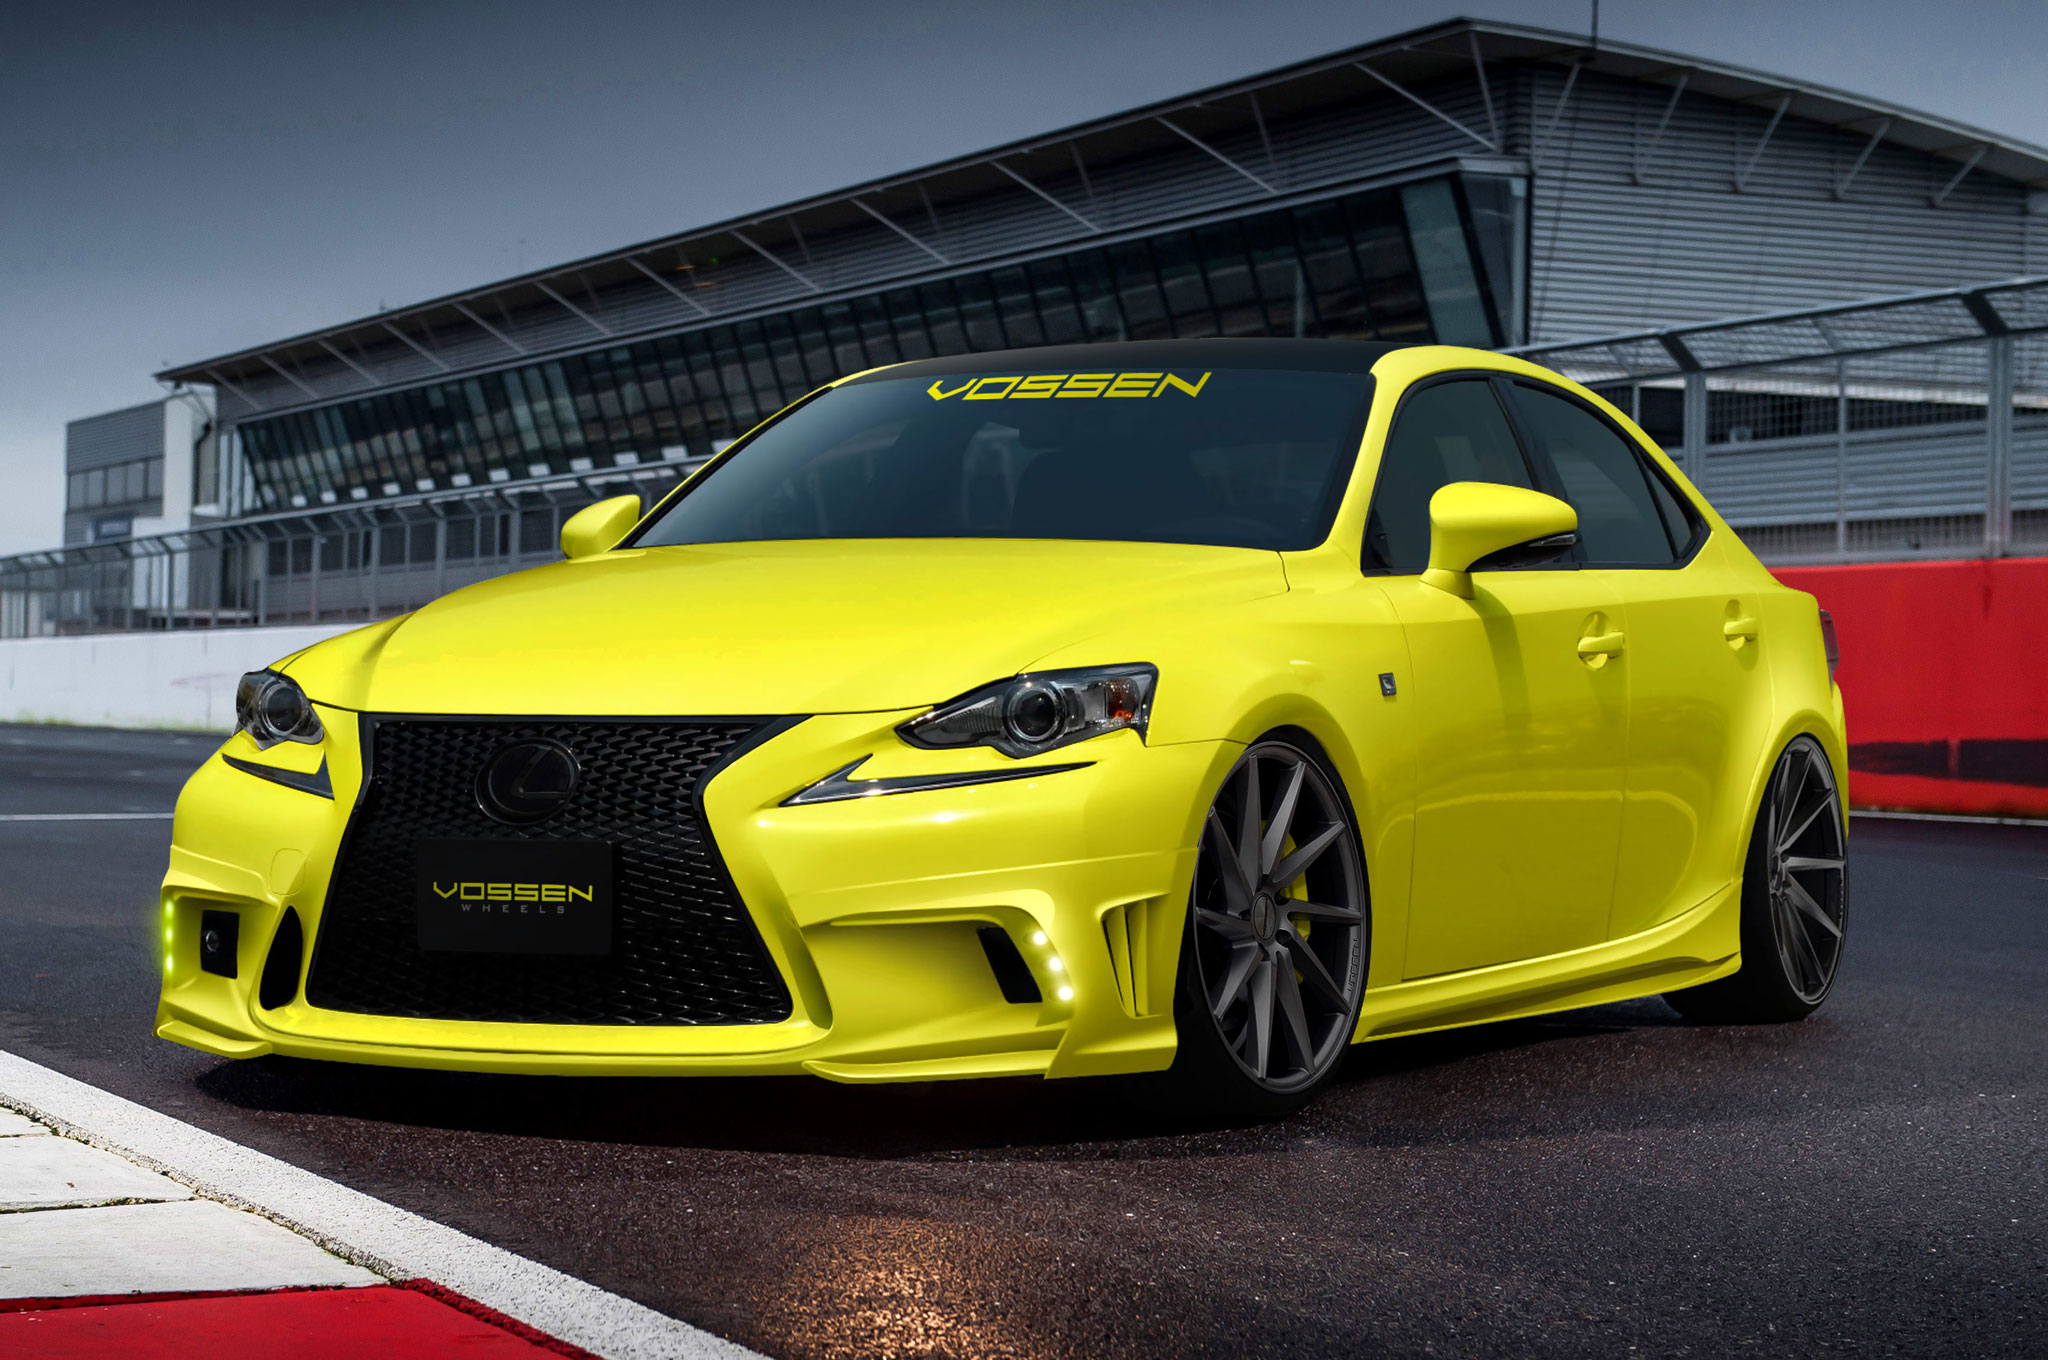 2014 Lexus IS Takes Six Different Forms at 2013 SEMA Show